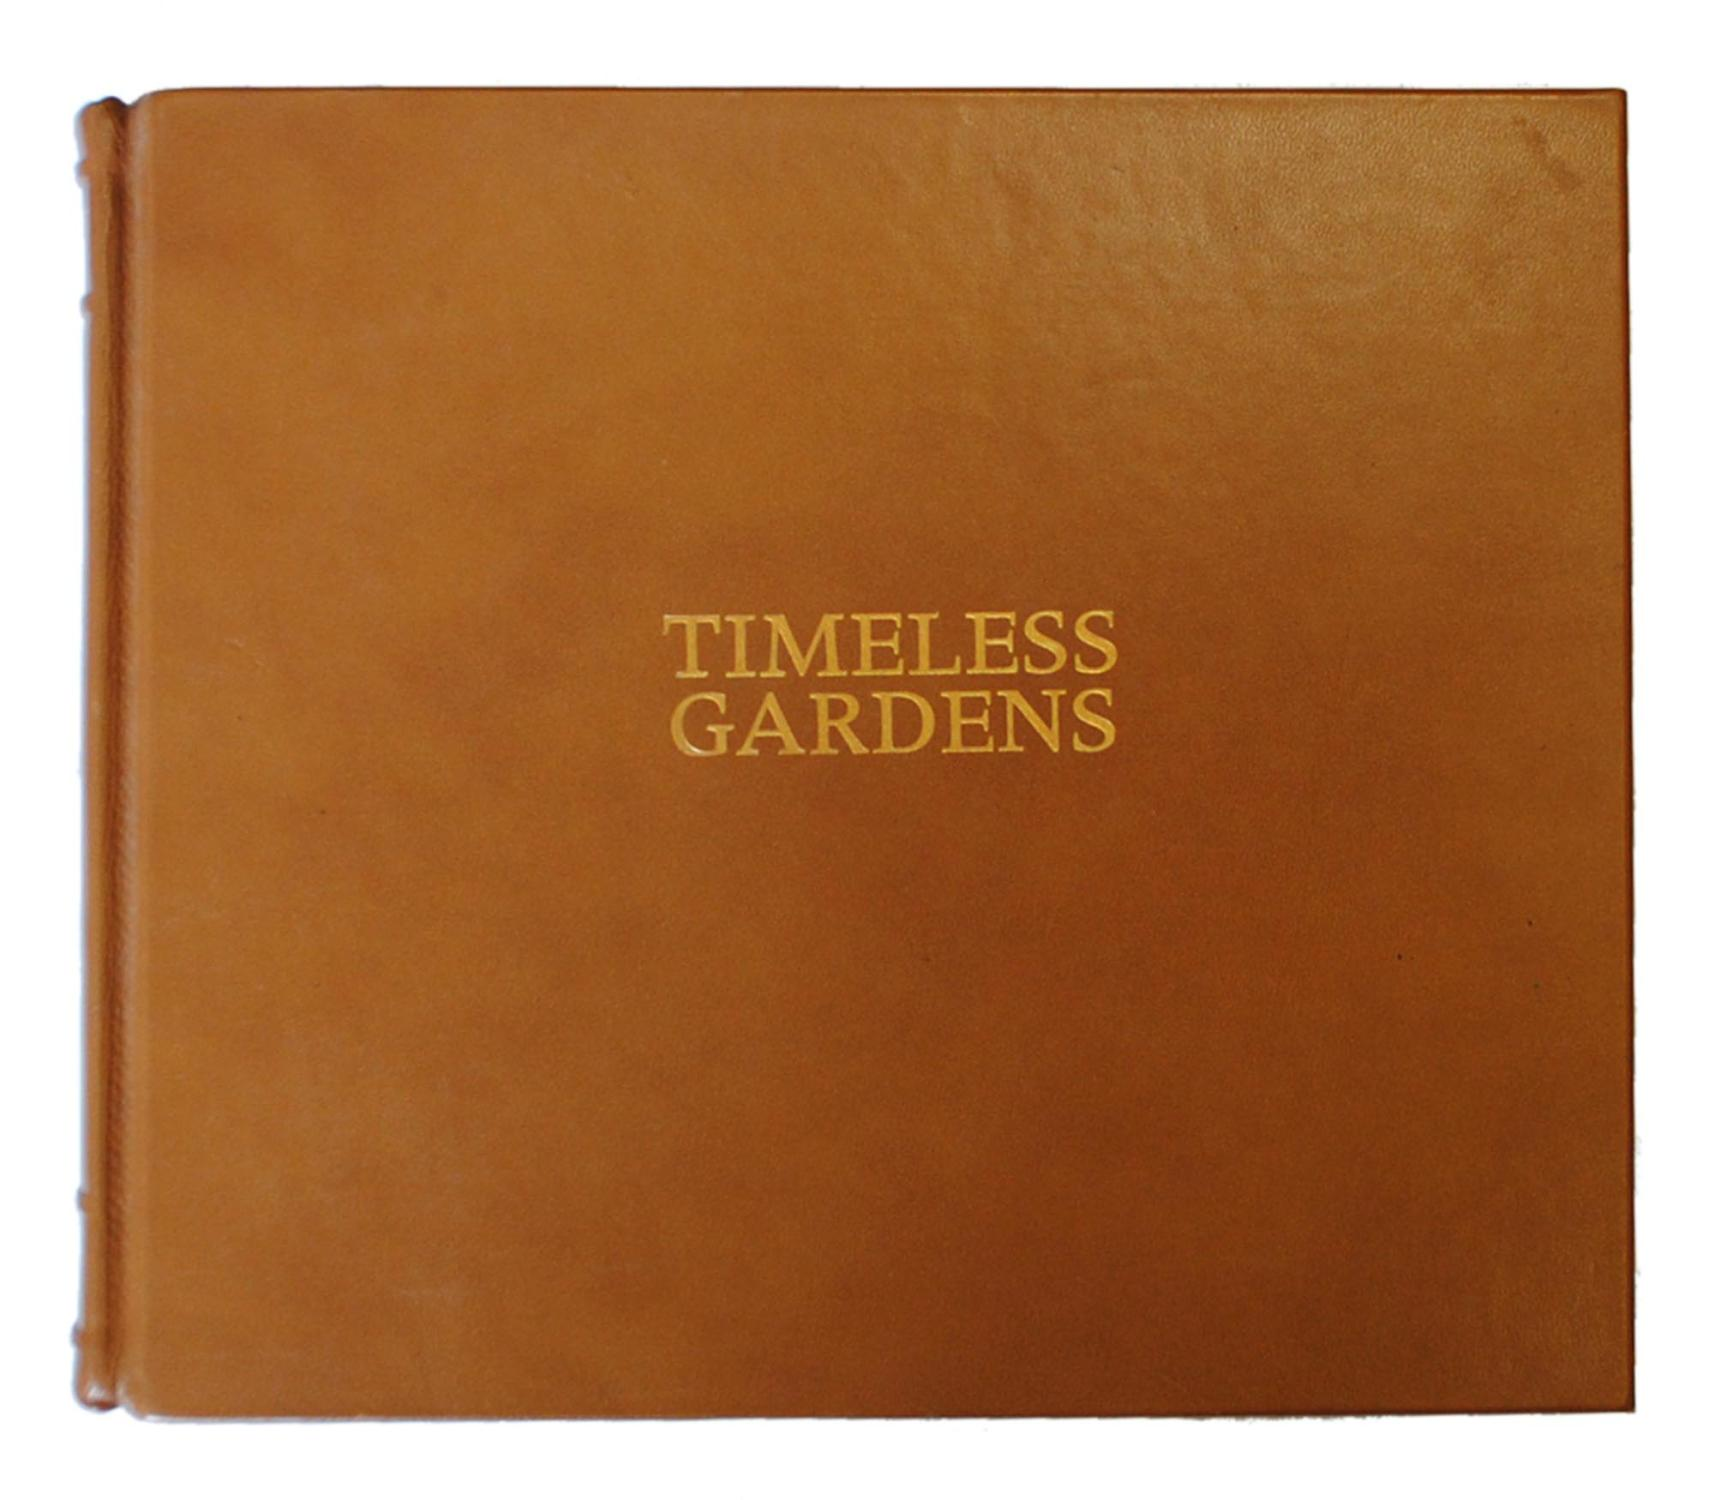 Timeless_Gardens_WILLIAMS_Eleanor_and_Wesley_STACEY_and_others_Très_bon_Couverture_rigide